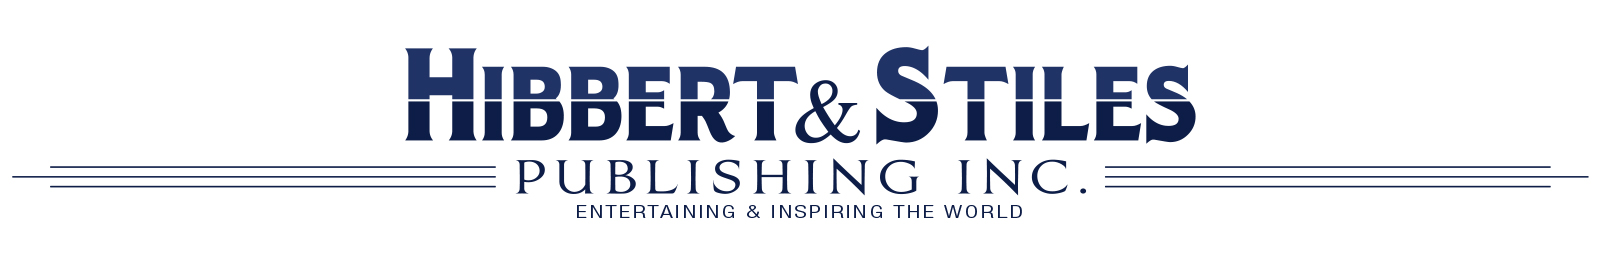 Hibbert & Stiles Publishing Inc. Logo